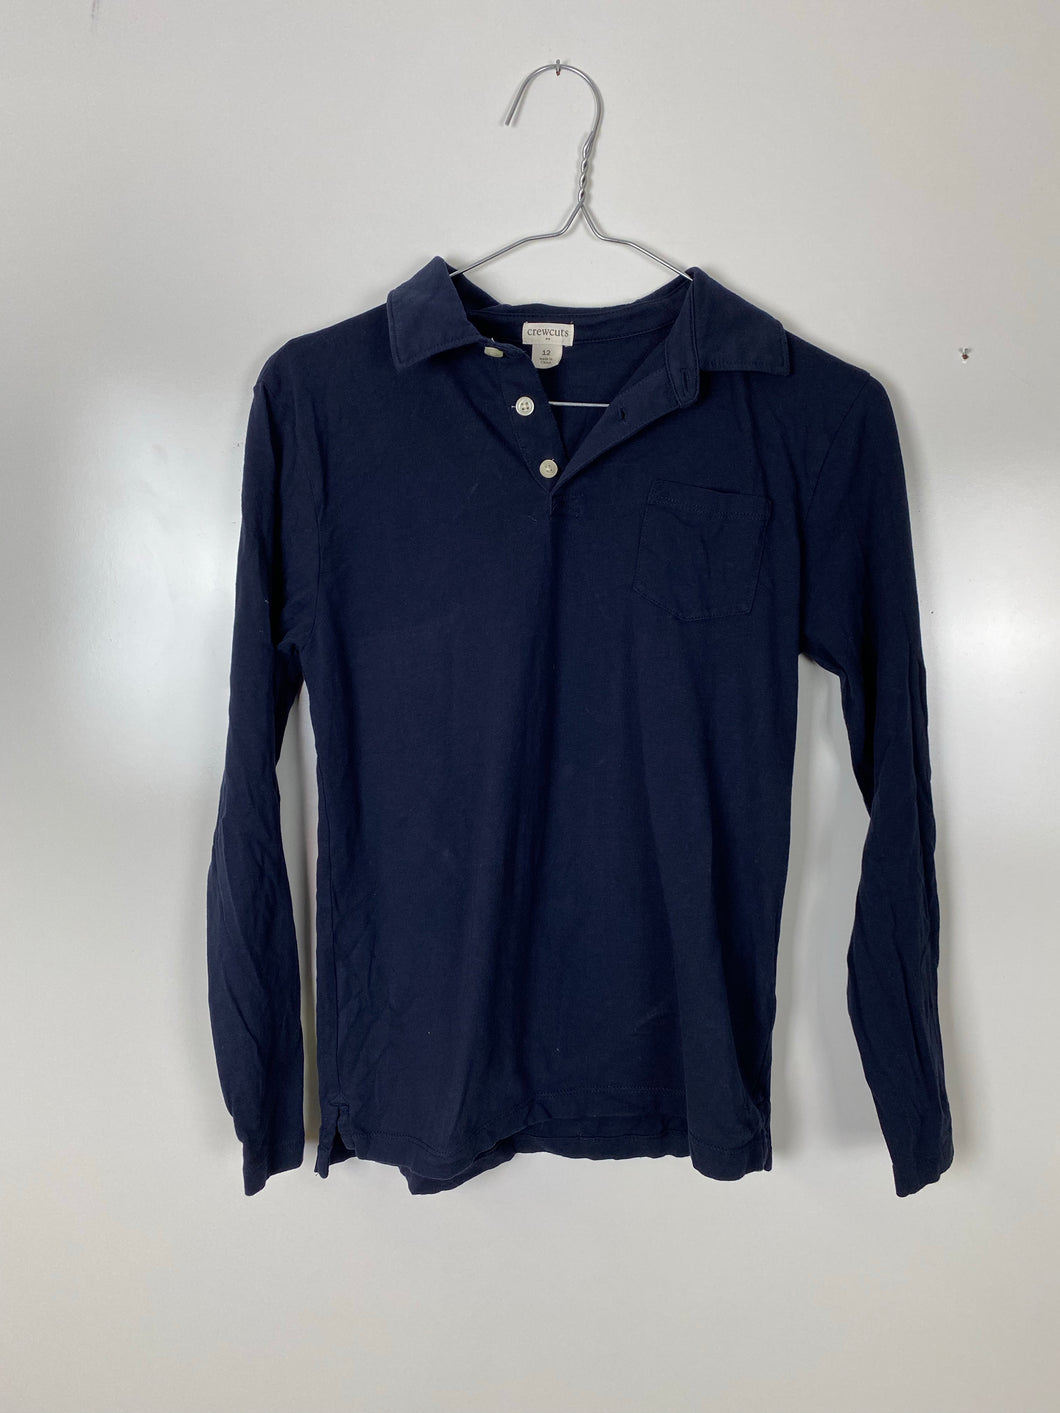 Crewcuts soft polo size 12